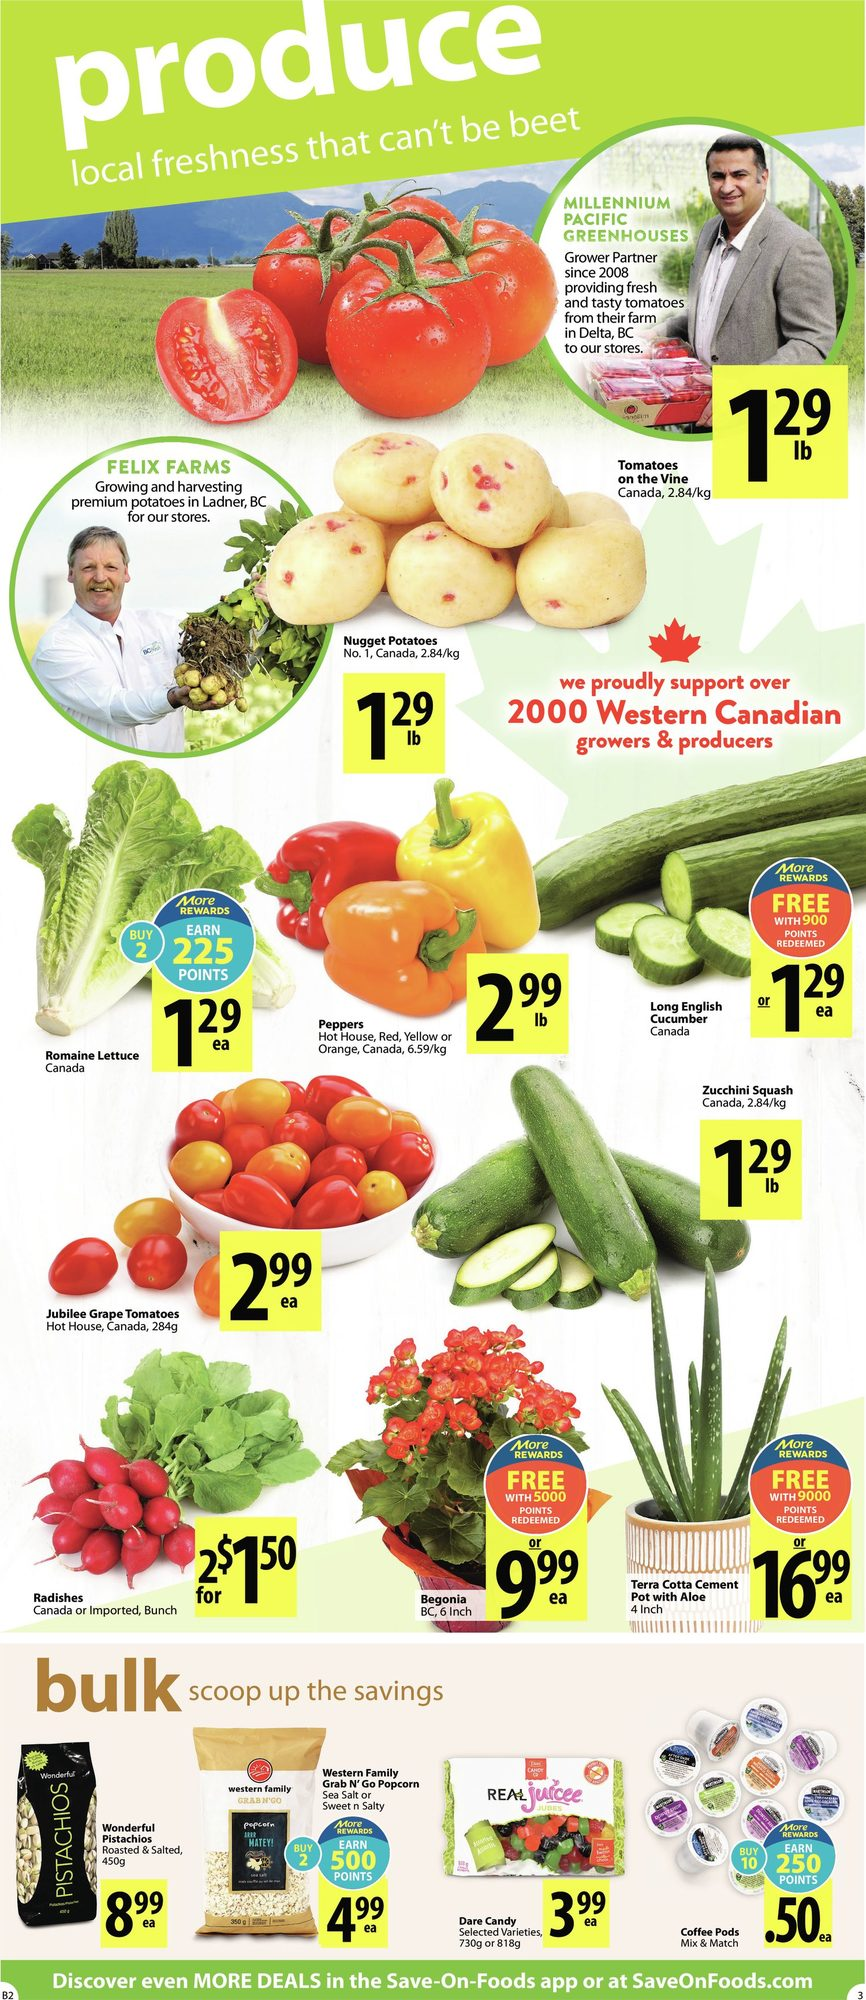 Save-On-Foods - Weekly Flyer Specials - Page 3